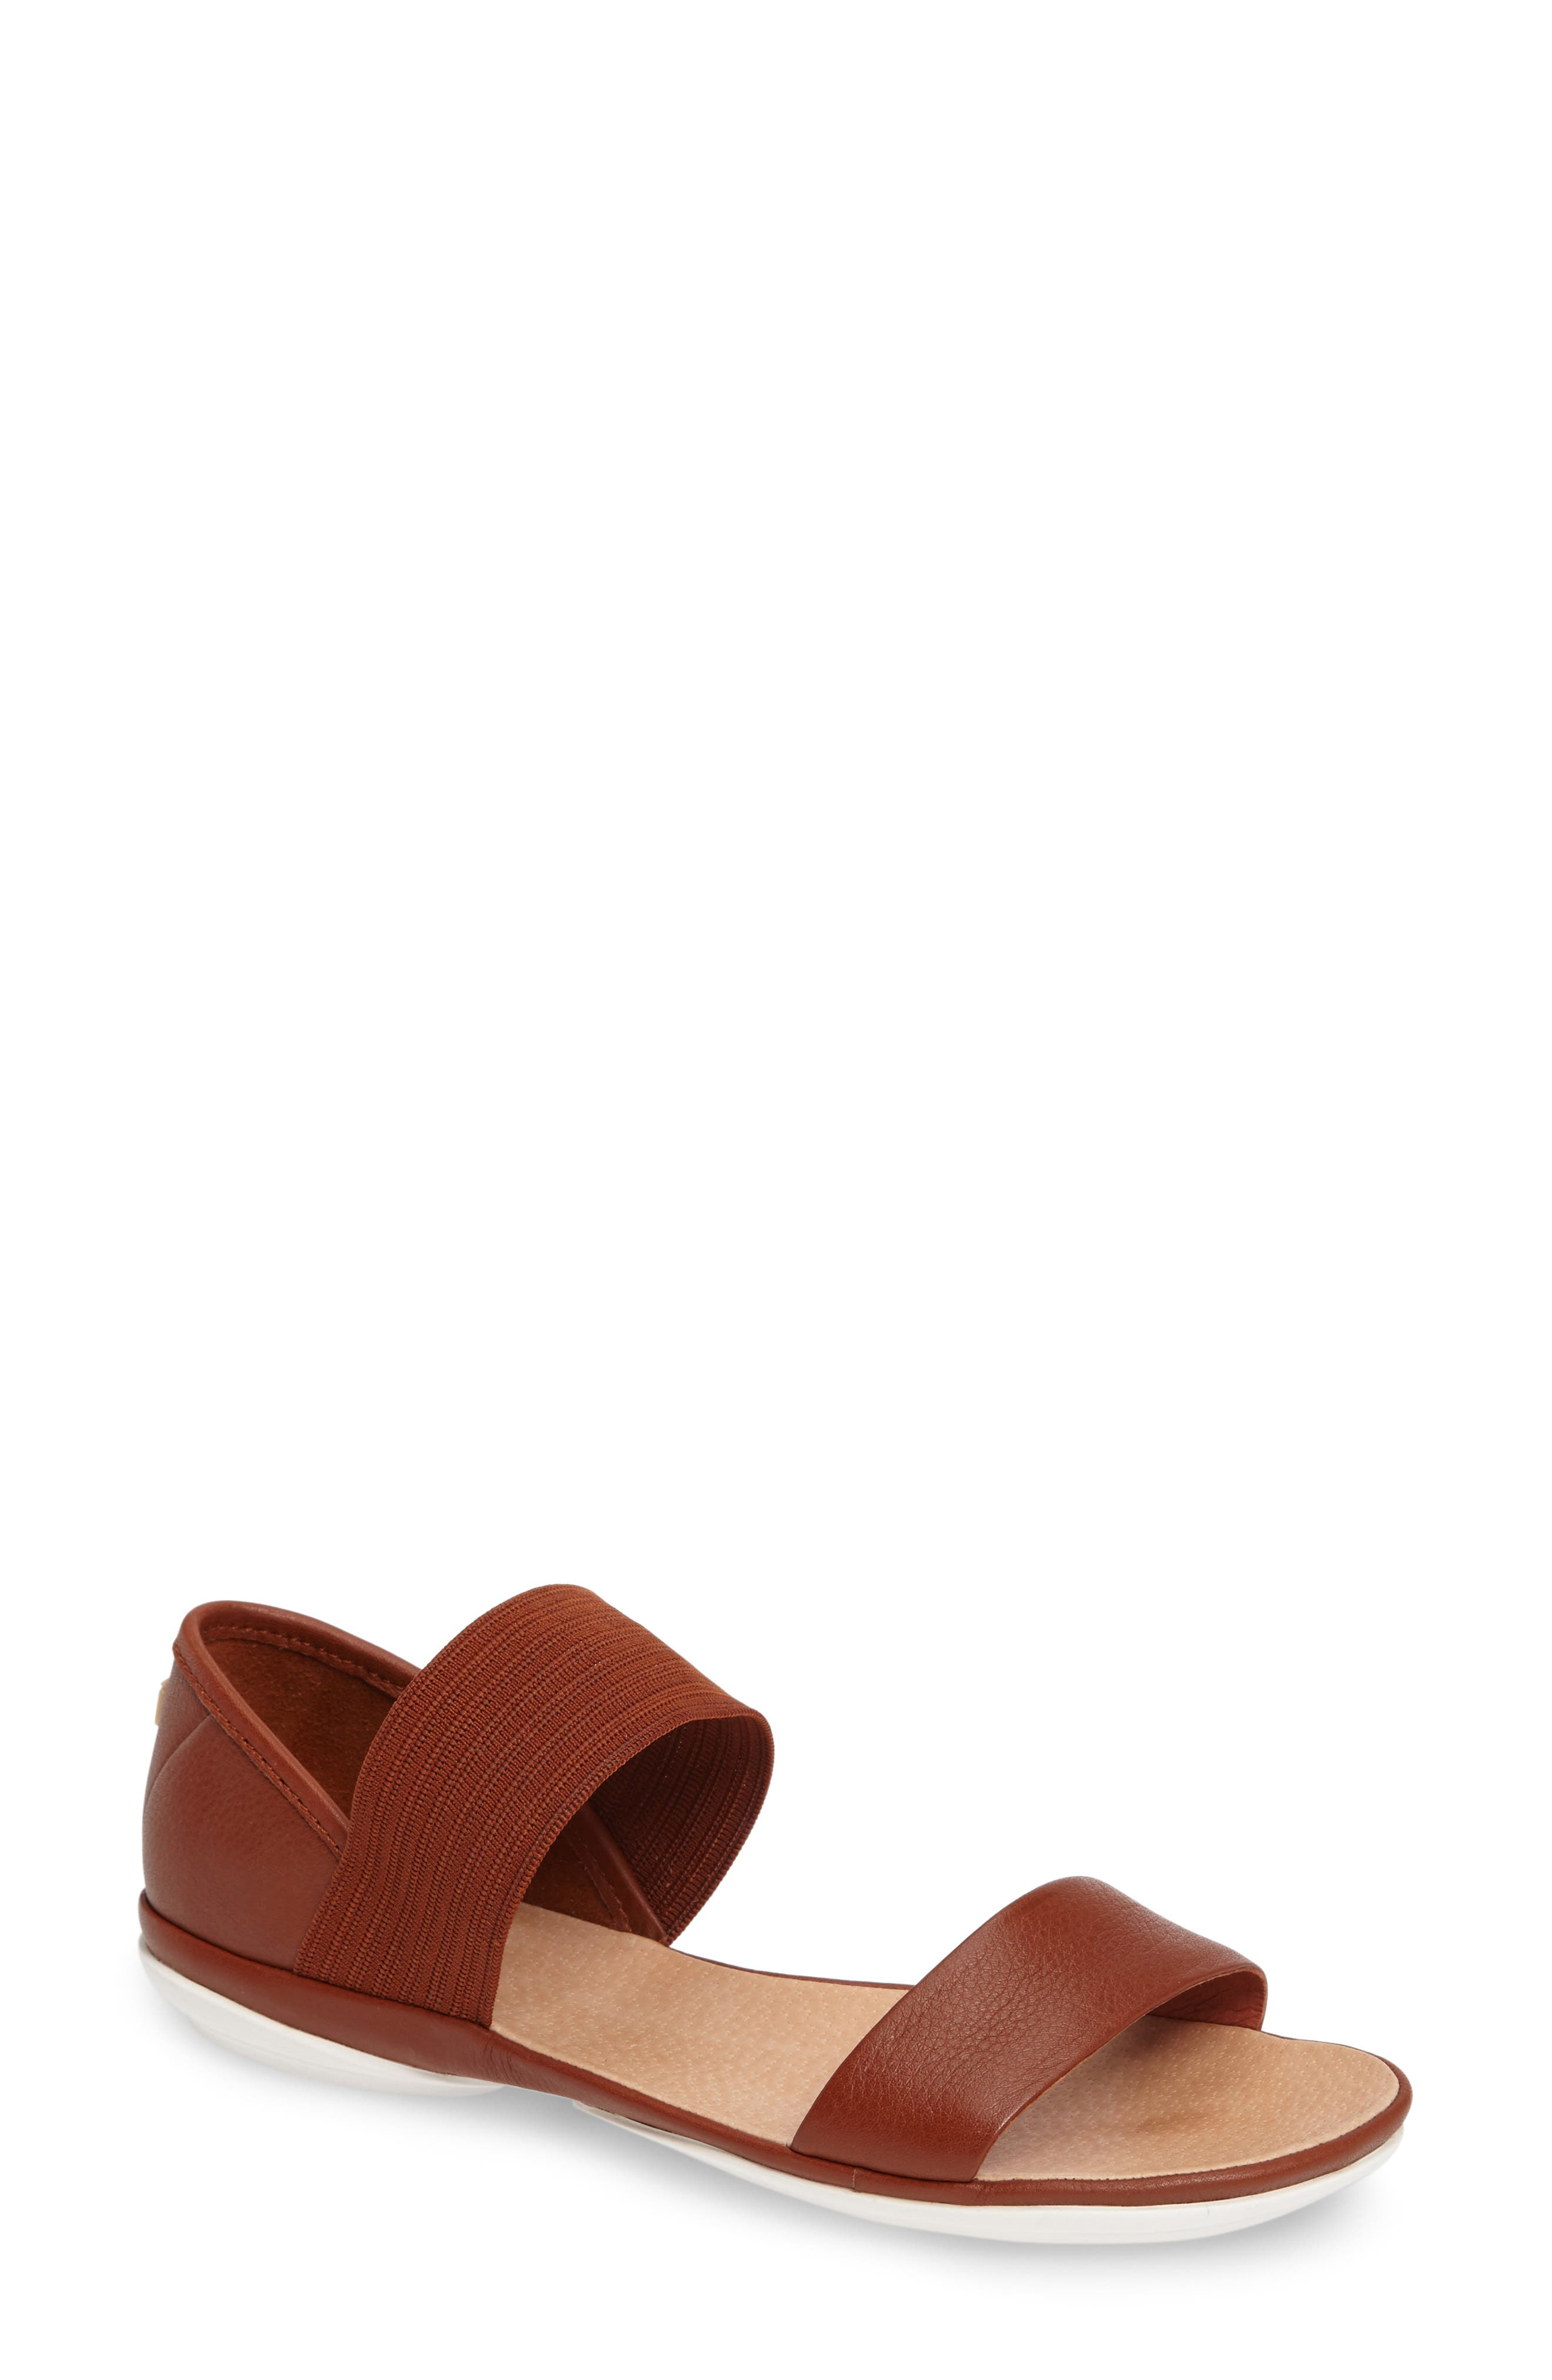 'Right Nina' Sandal,                         Main,                         color, Brown Leather